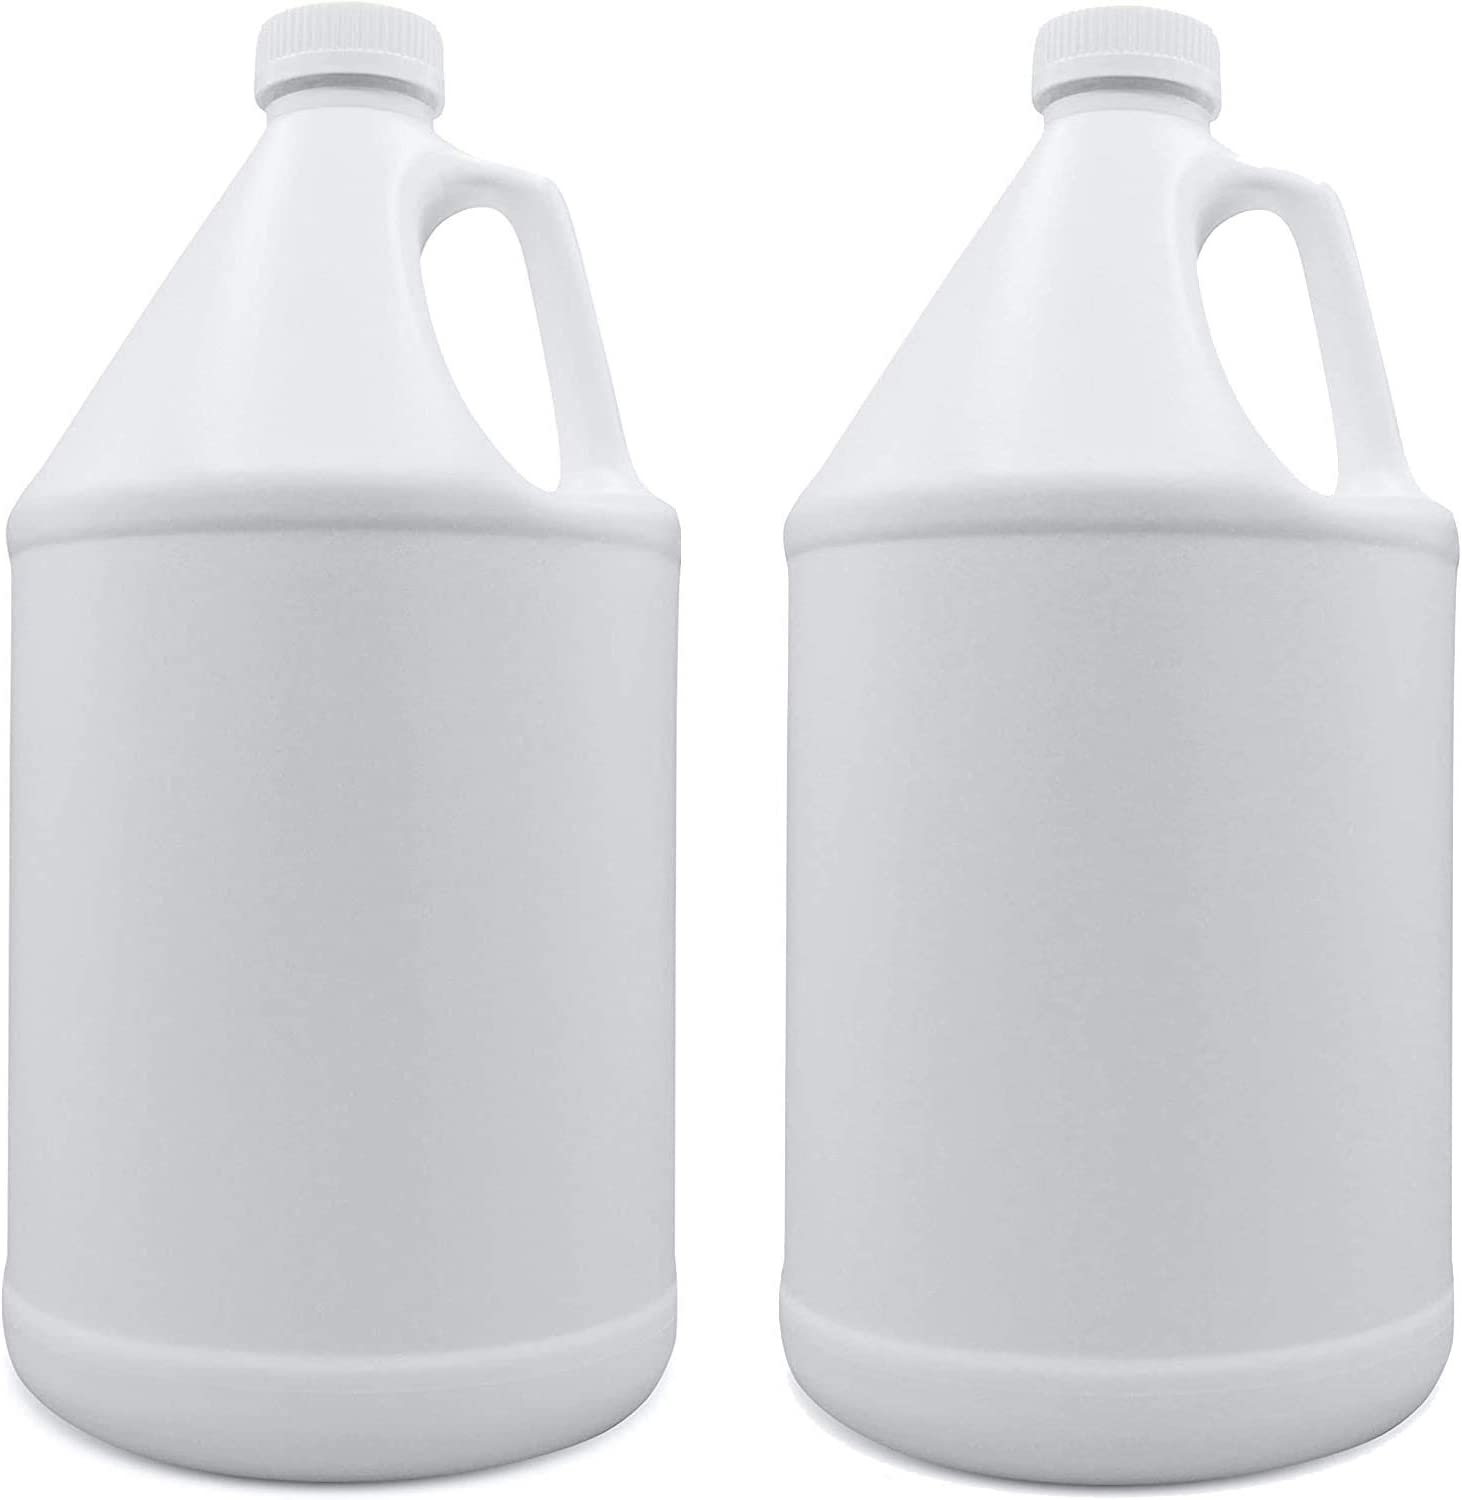 HAVENLAB Plastic Jug 2 Pack - Gallon Storage Containers with Cap and Reusable Leakproof Plug for Residential, Commercial, Industrial Grade Liquids - Durable - Mouth Thread Fits Most Pumps